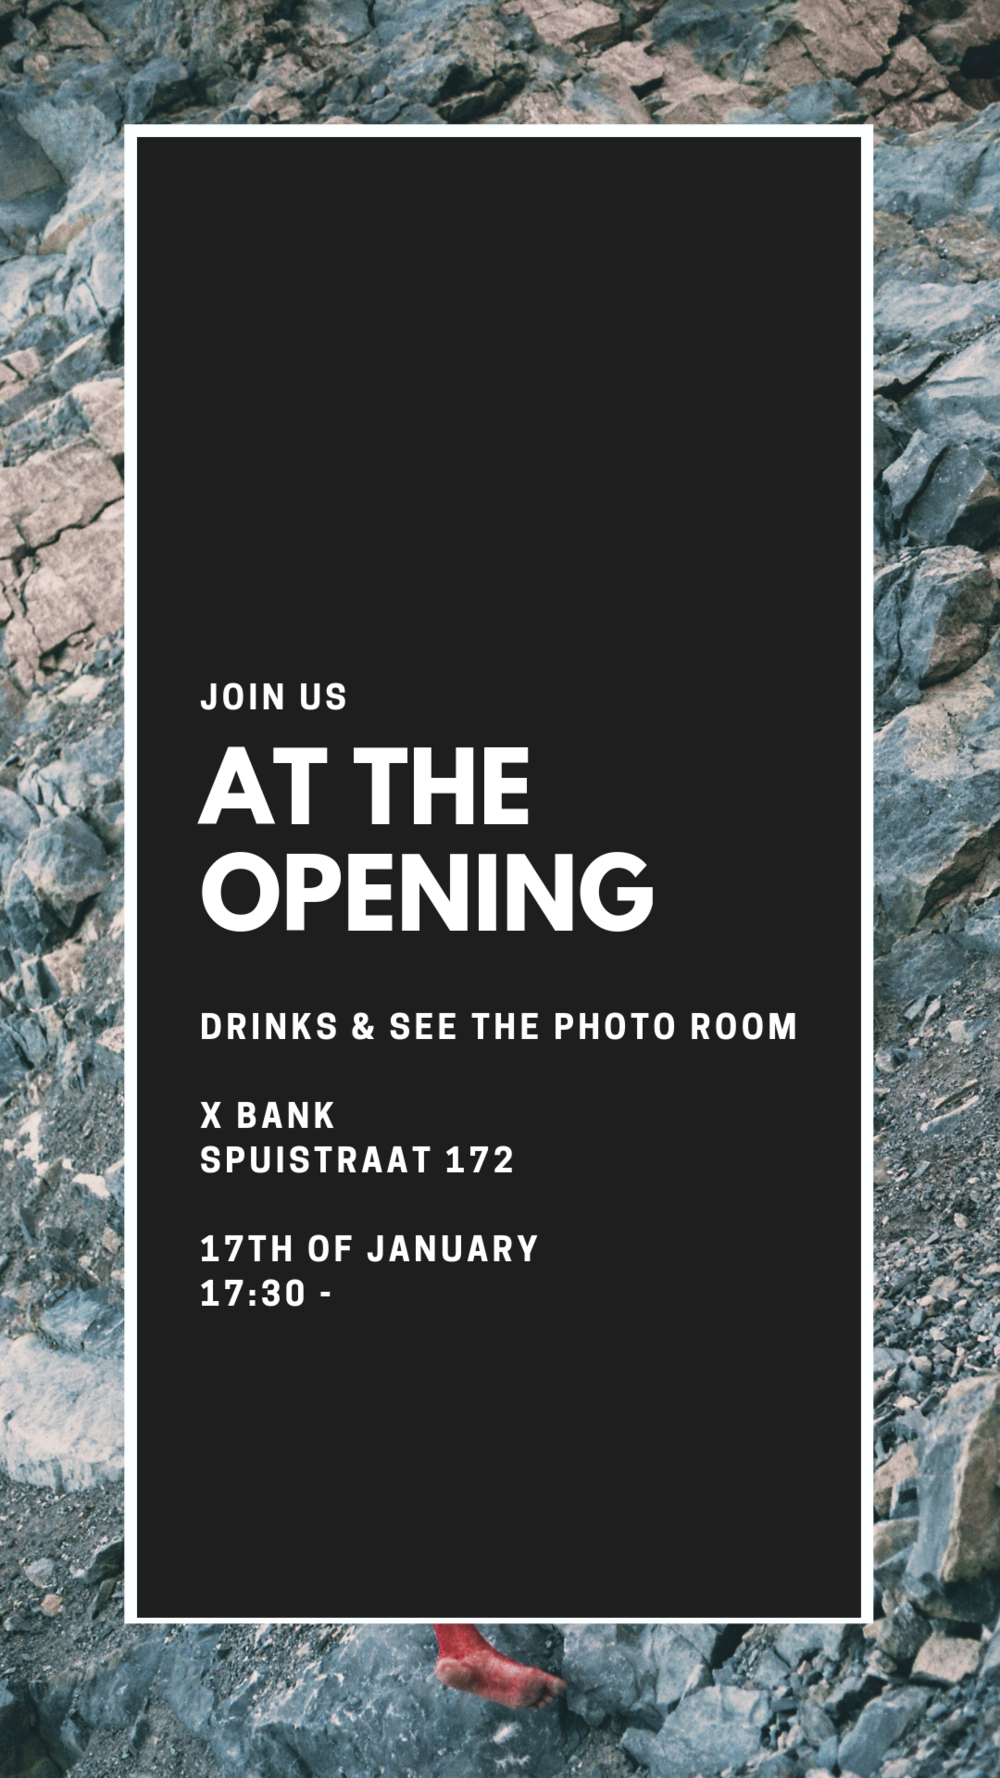 The Photo Room Exhibition, curated by Uncoated.